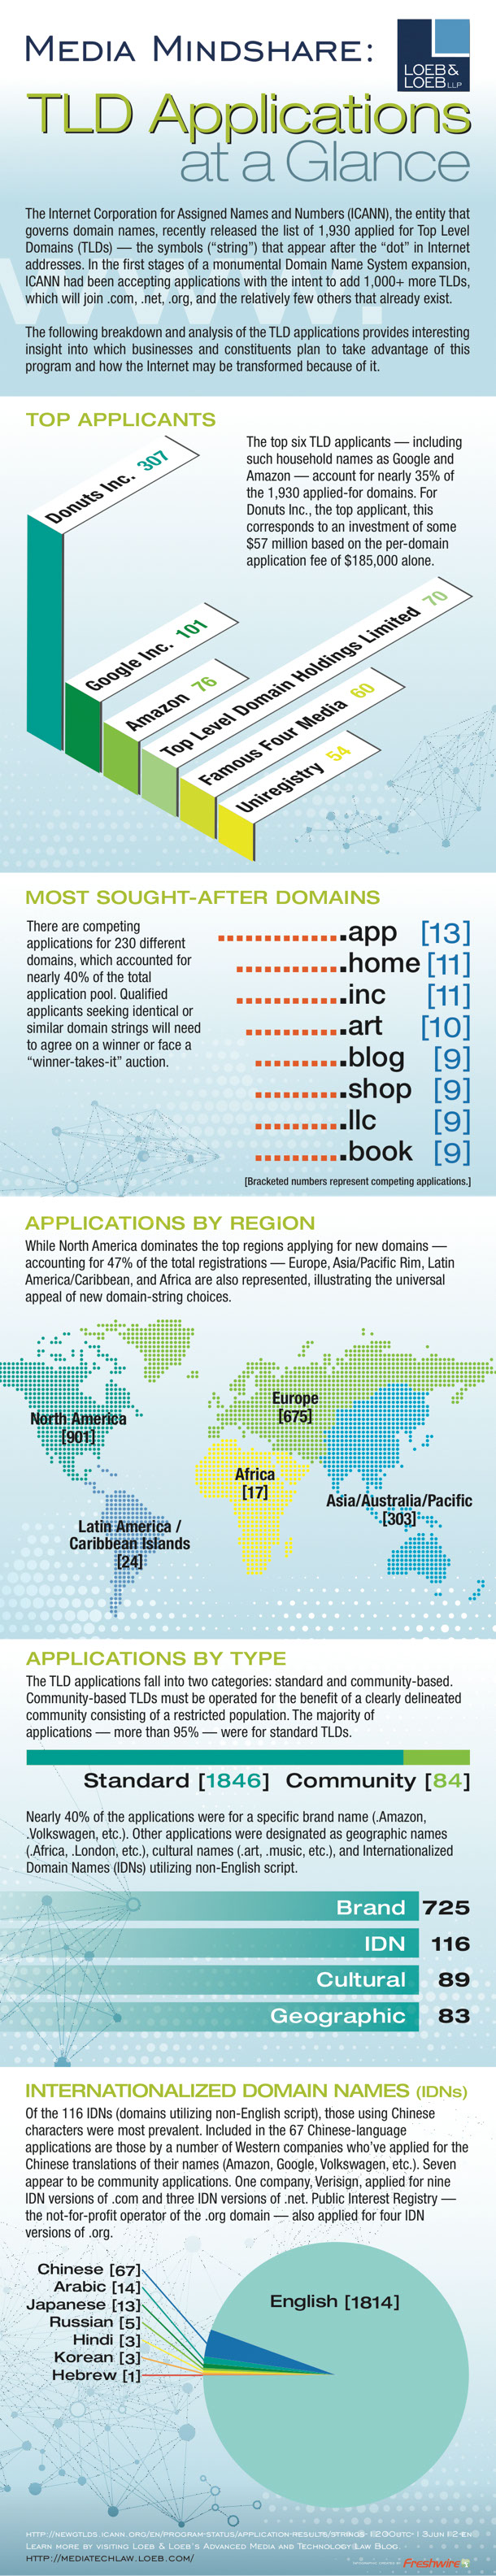 Tld-Applications-At-A-Glance-infographic